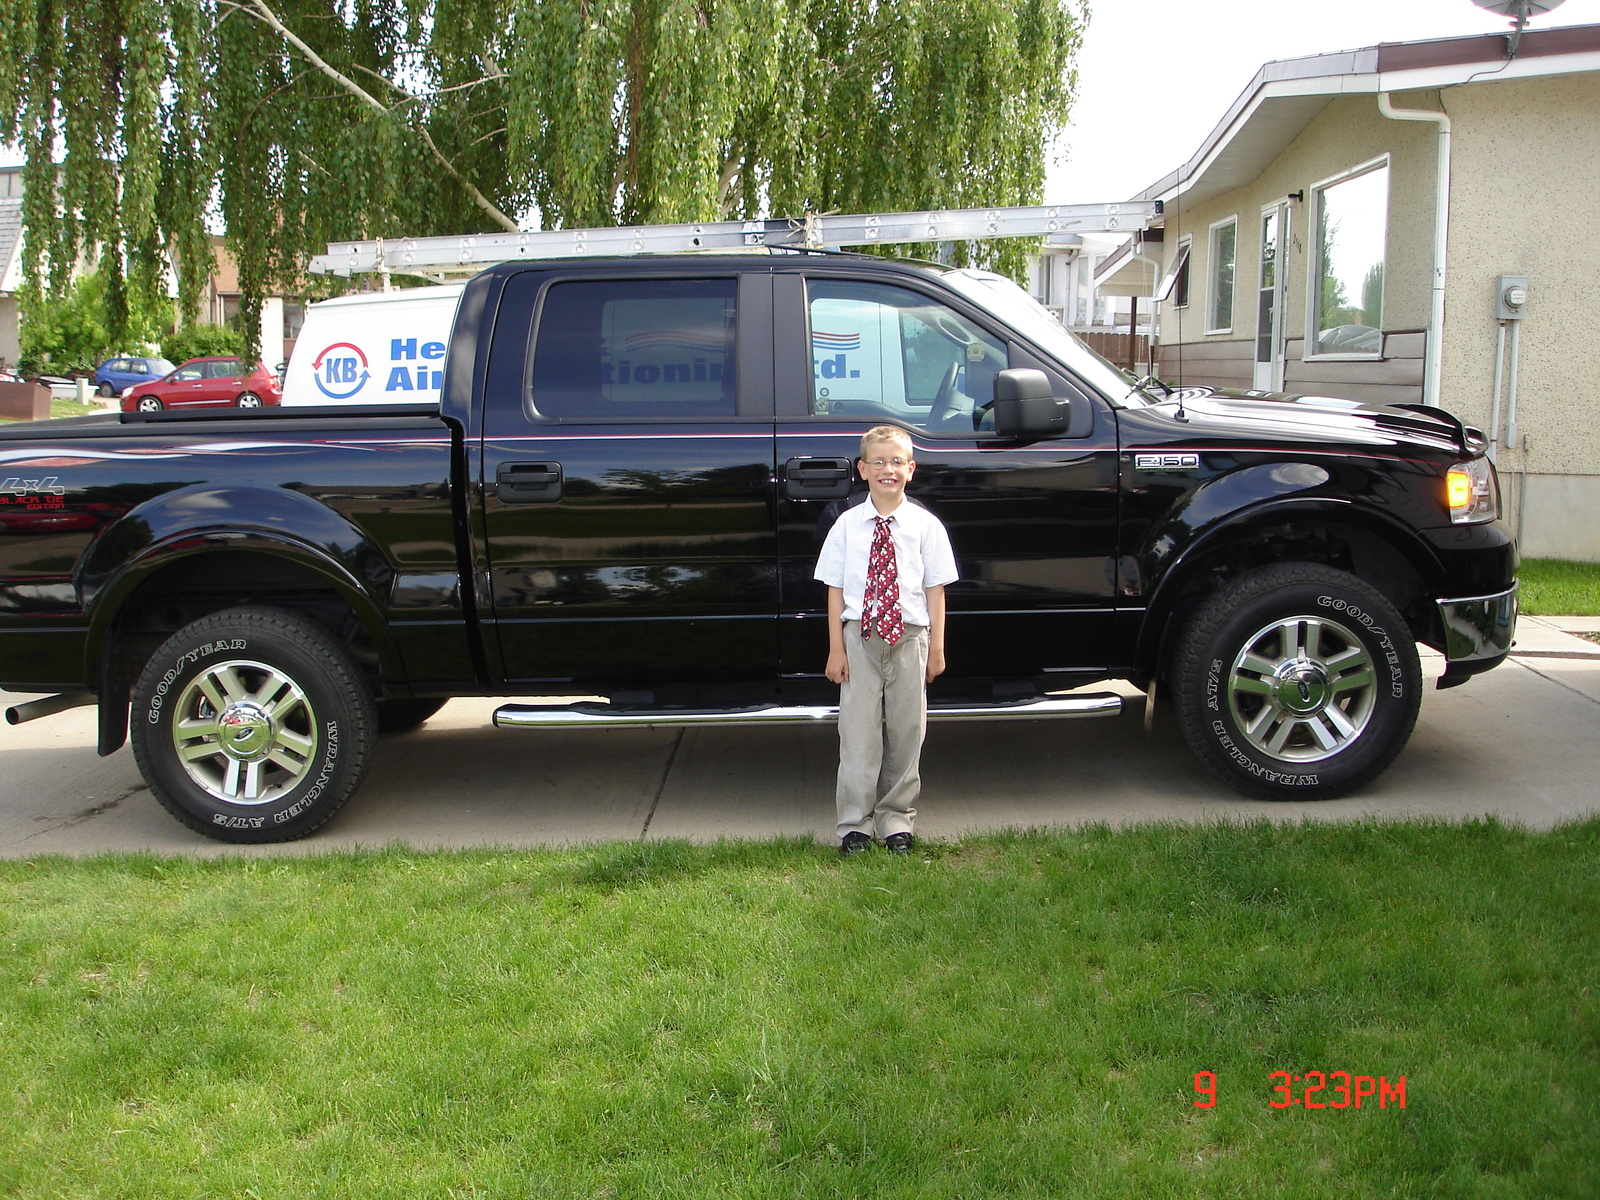 Ford 54 Triton Ford F-150 Lariat SuperCrew:picture # 10 , reviews, news ...